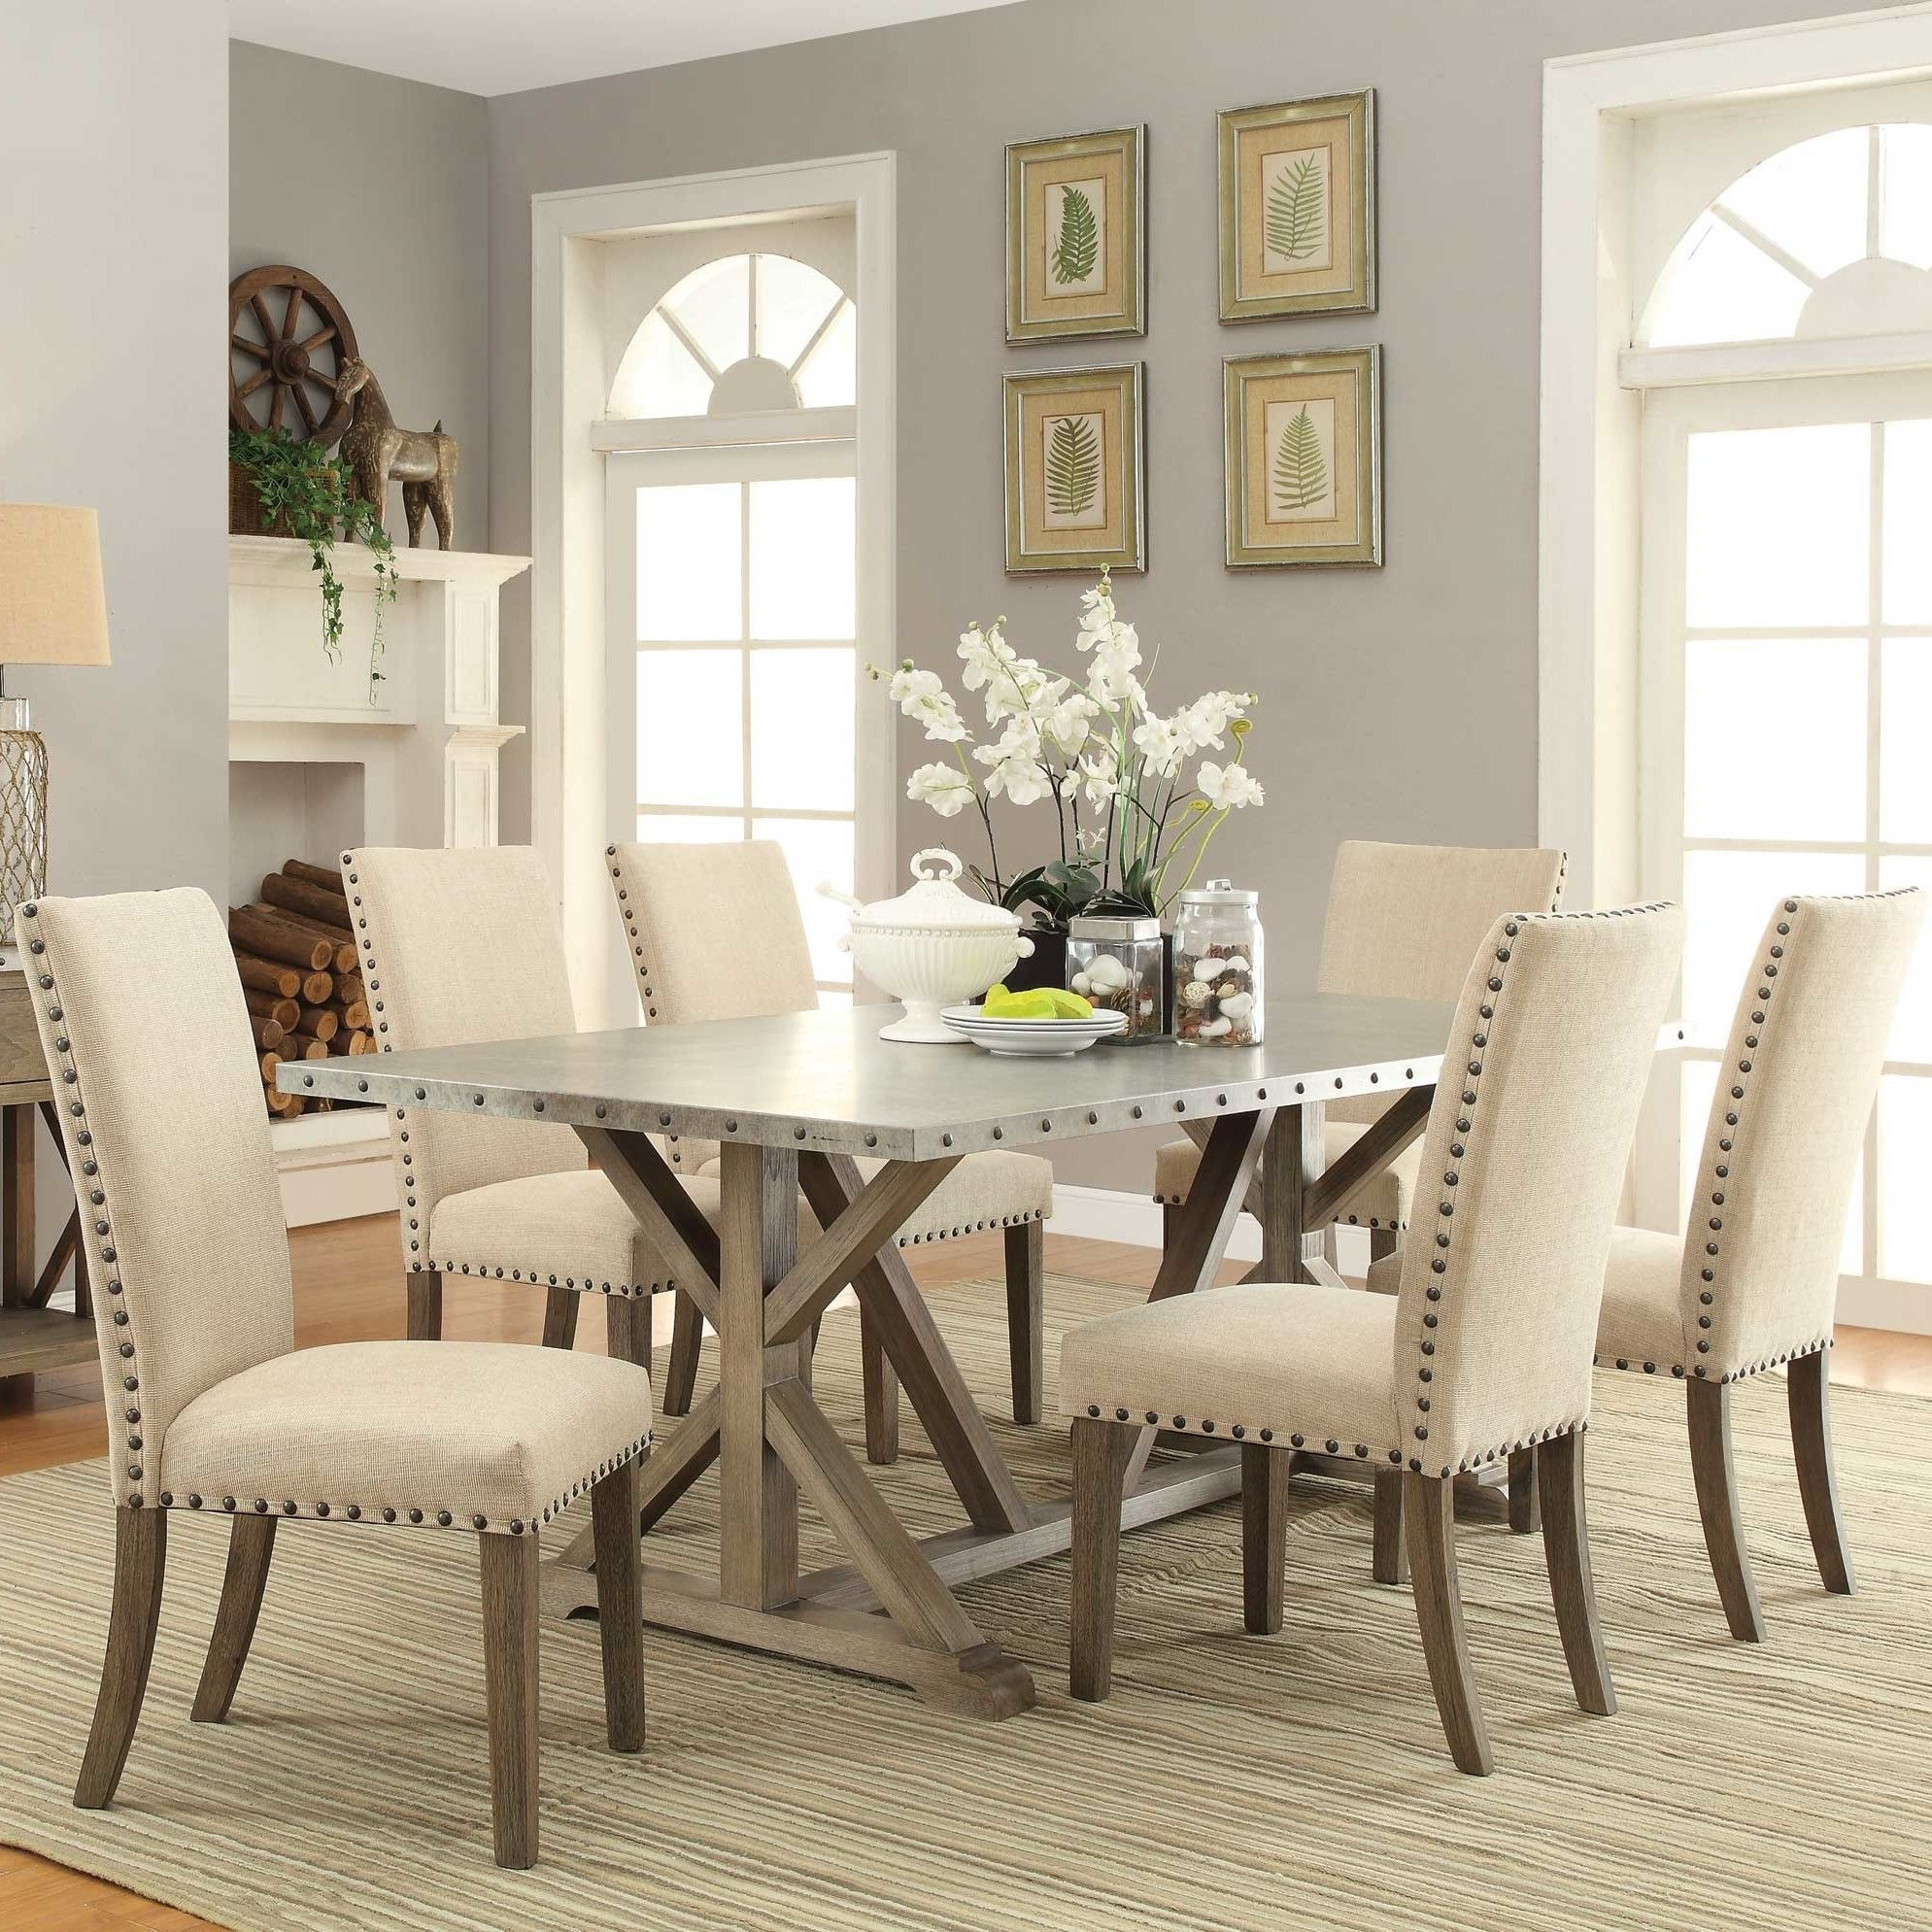 Wayfair  Online Home Store For Furniture Decor Outdoors  More  Wayfair  Dining Room